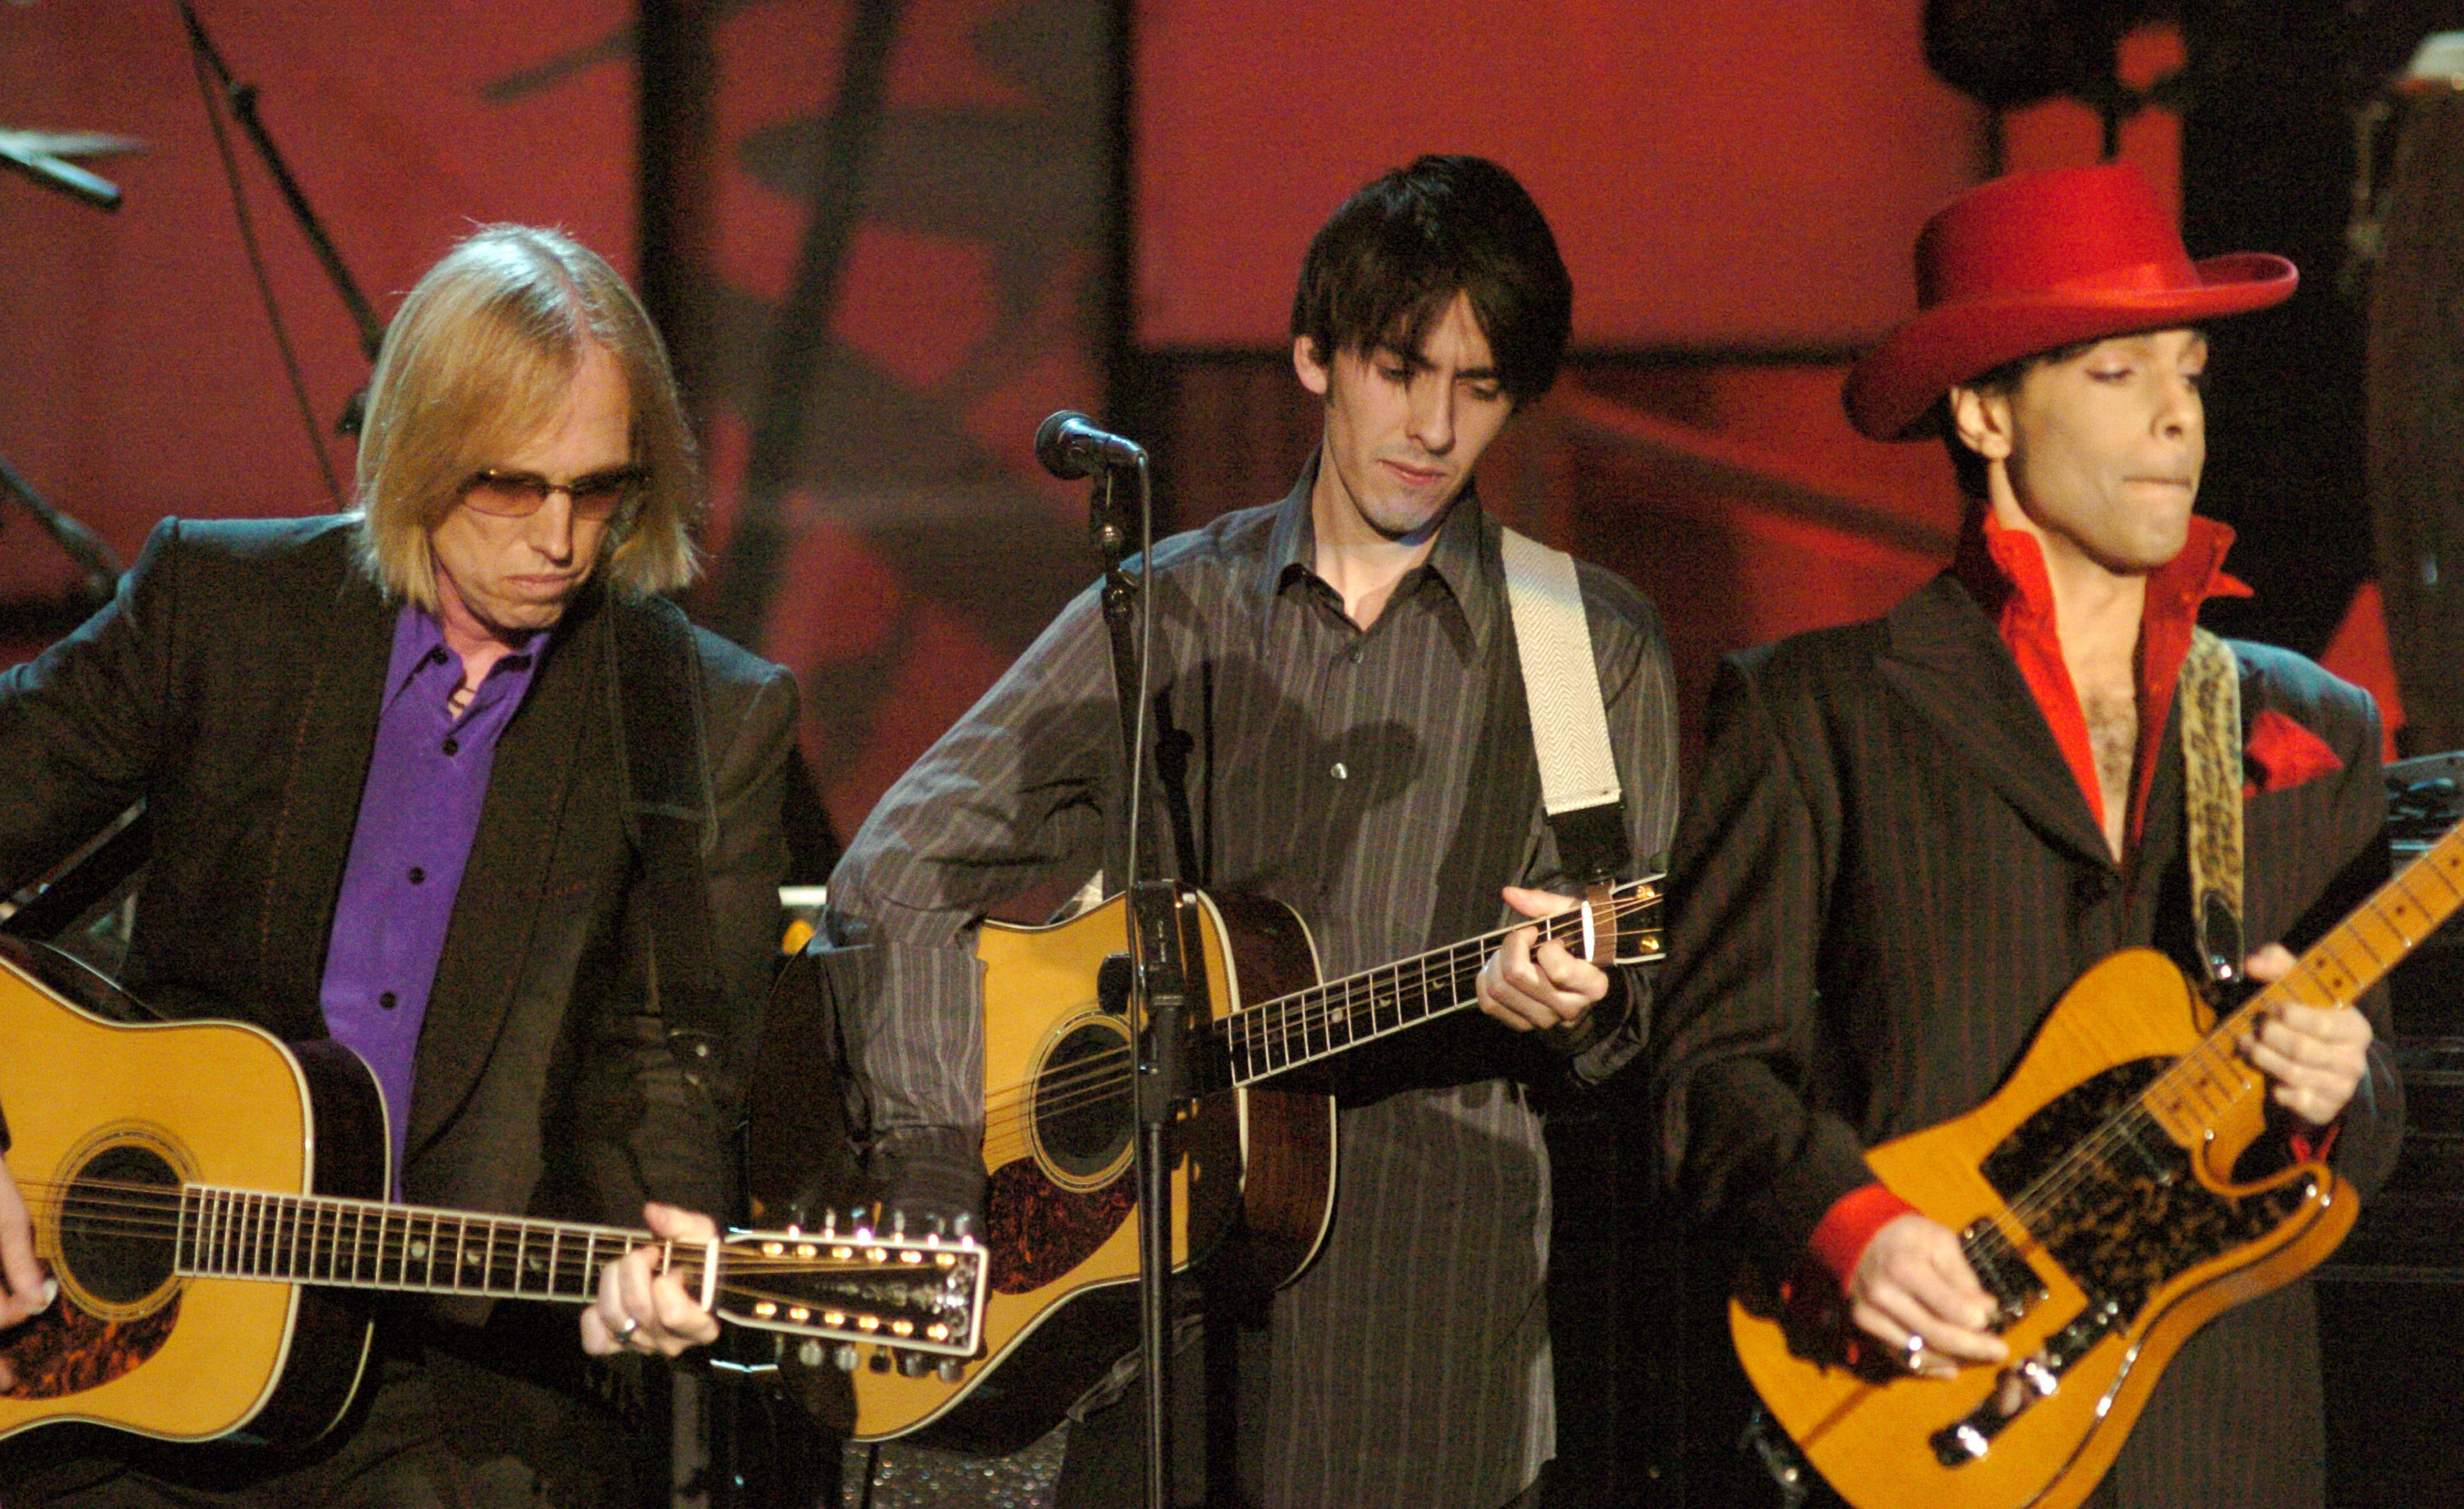 From left: Tom Petty, Dhani Harrison and Prince perform during The 19th Annual Rock and Roll Hall of Fame Induction Ceremony in New York City on March 15, 2004. Prince was inducted into the Hall of Fame that evening.